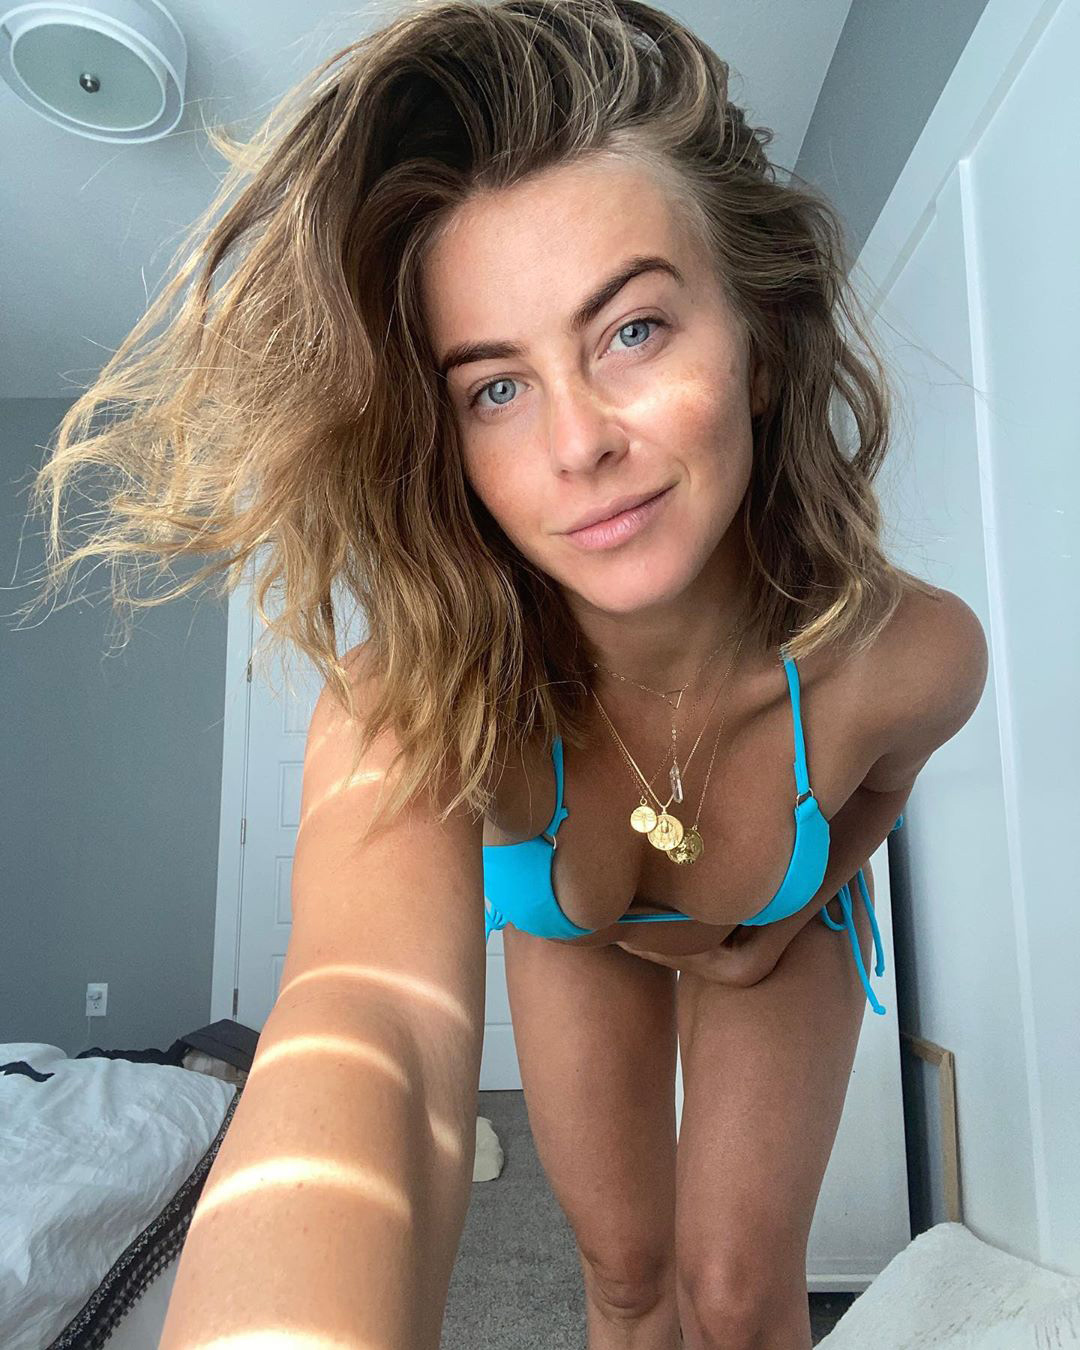 """""""Different kind of Sunday Blues,"""" wrote the Dancing With the Stars alum, taking a bedroom selfie in a turquoise bikini."""